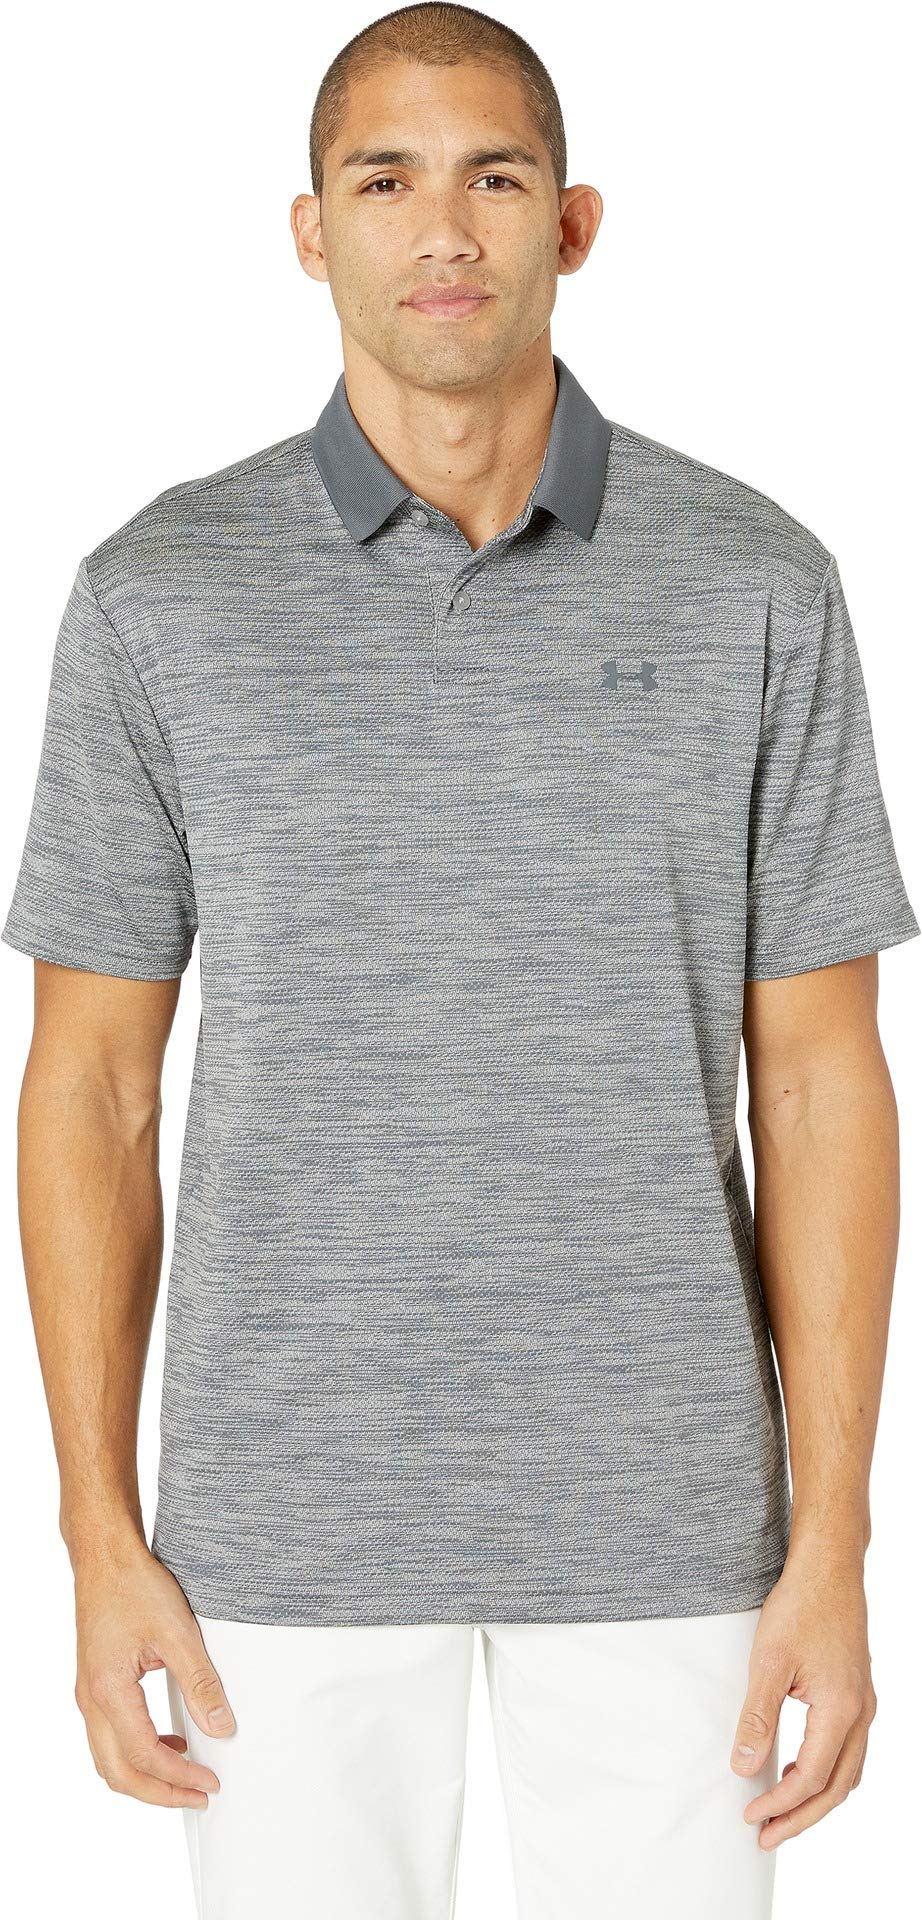 Under Armour Men's Performance Polo 2.0, Steel//Pitch Gray, XX-Large by Under Armour